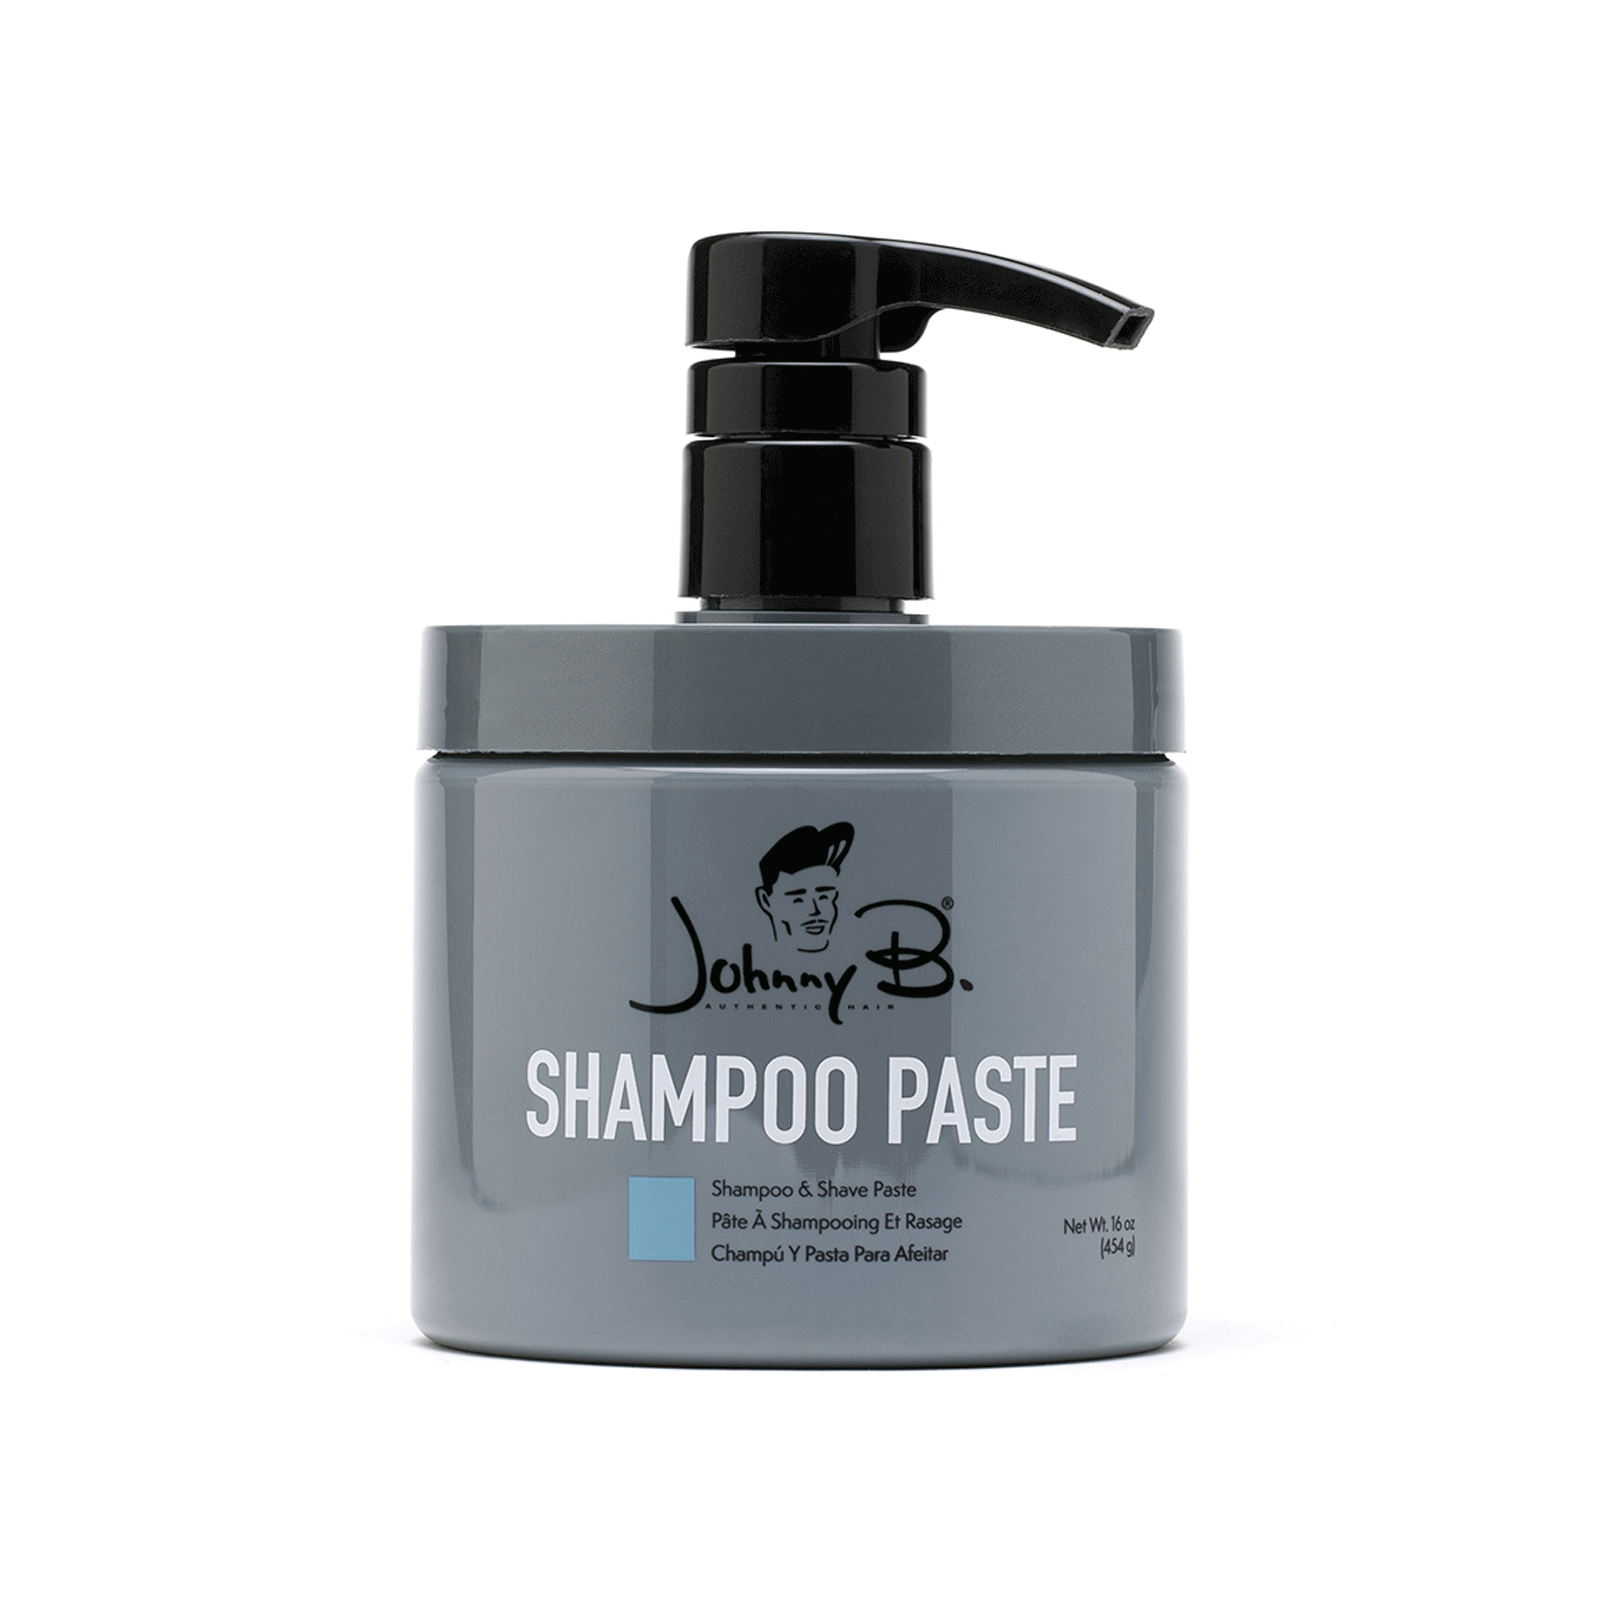 Shampoo Paste with Pump